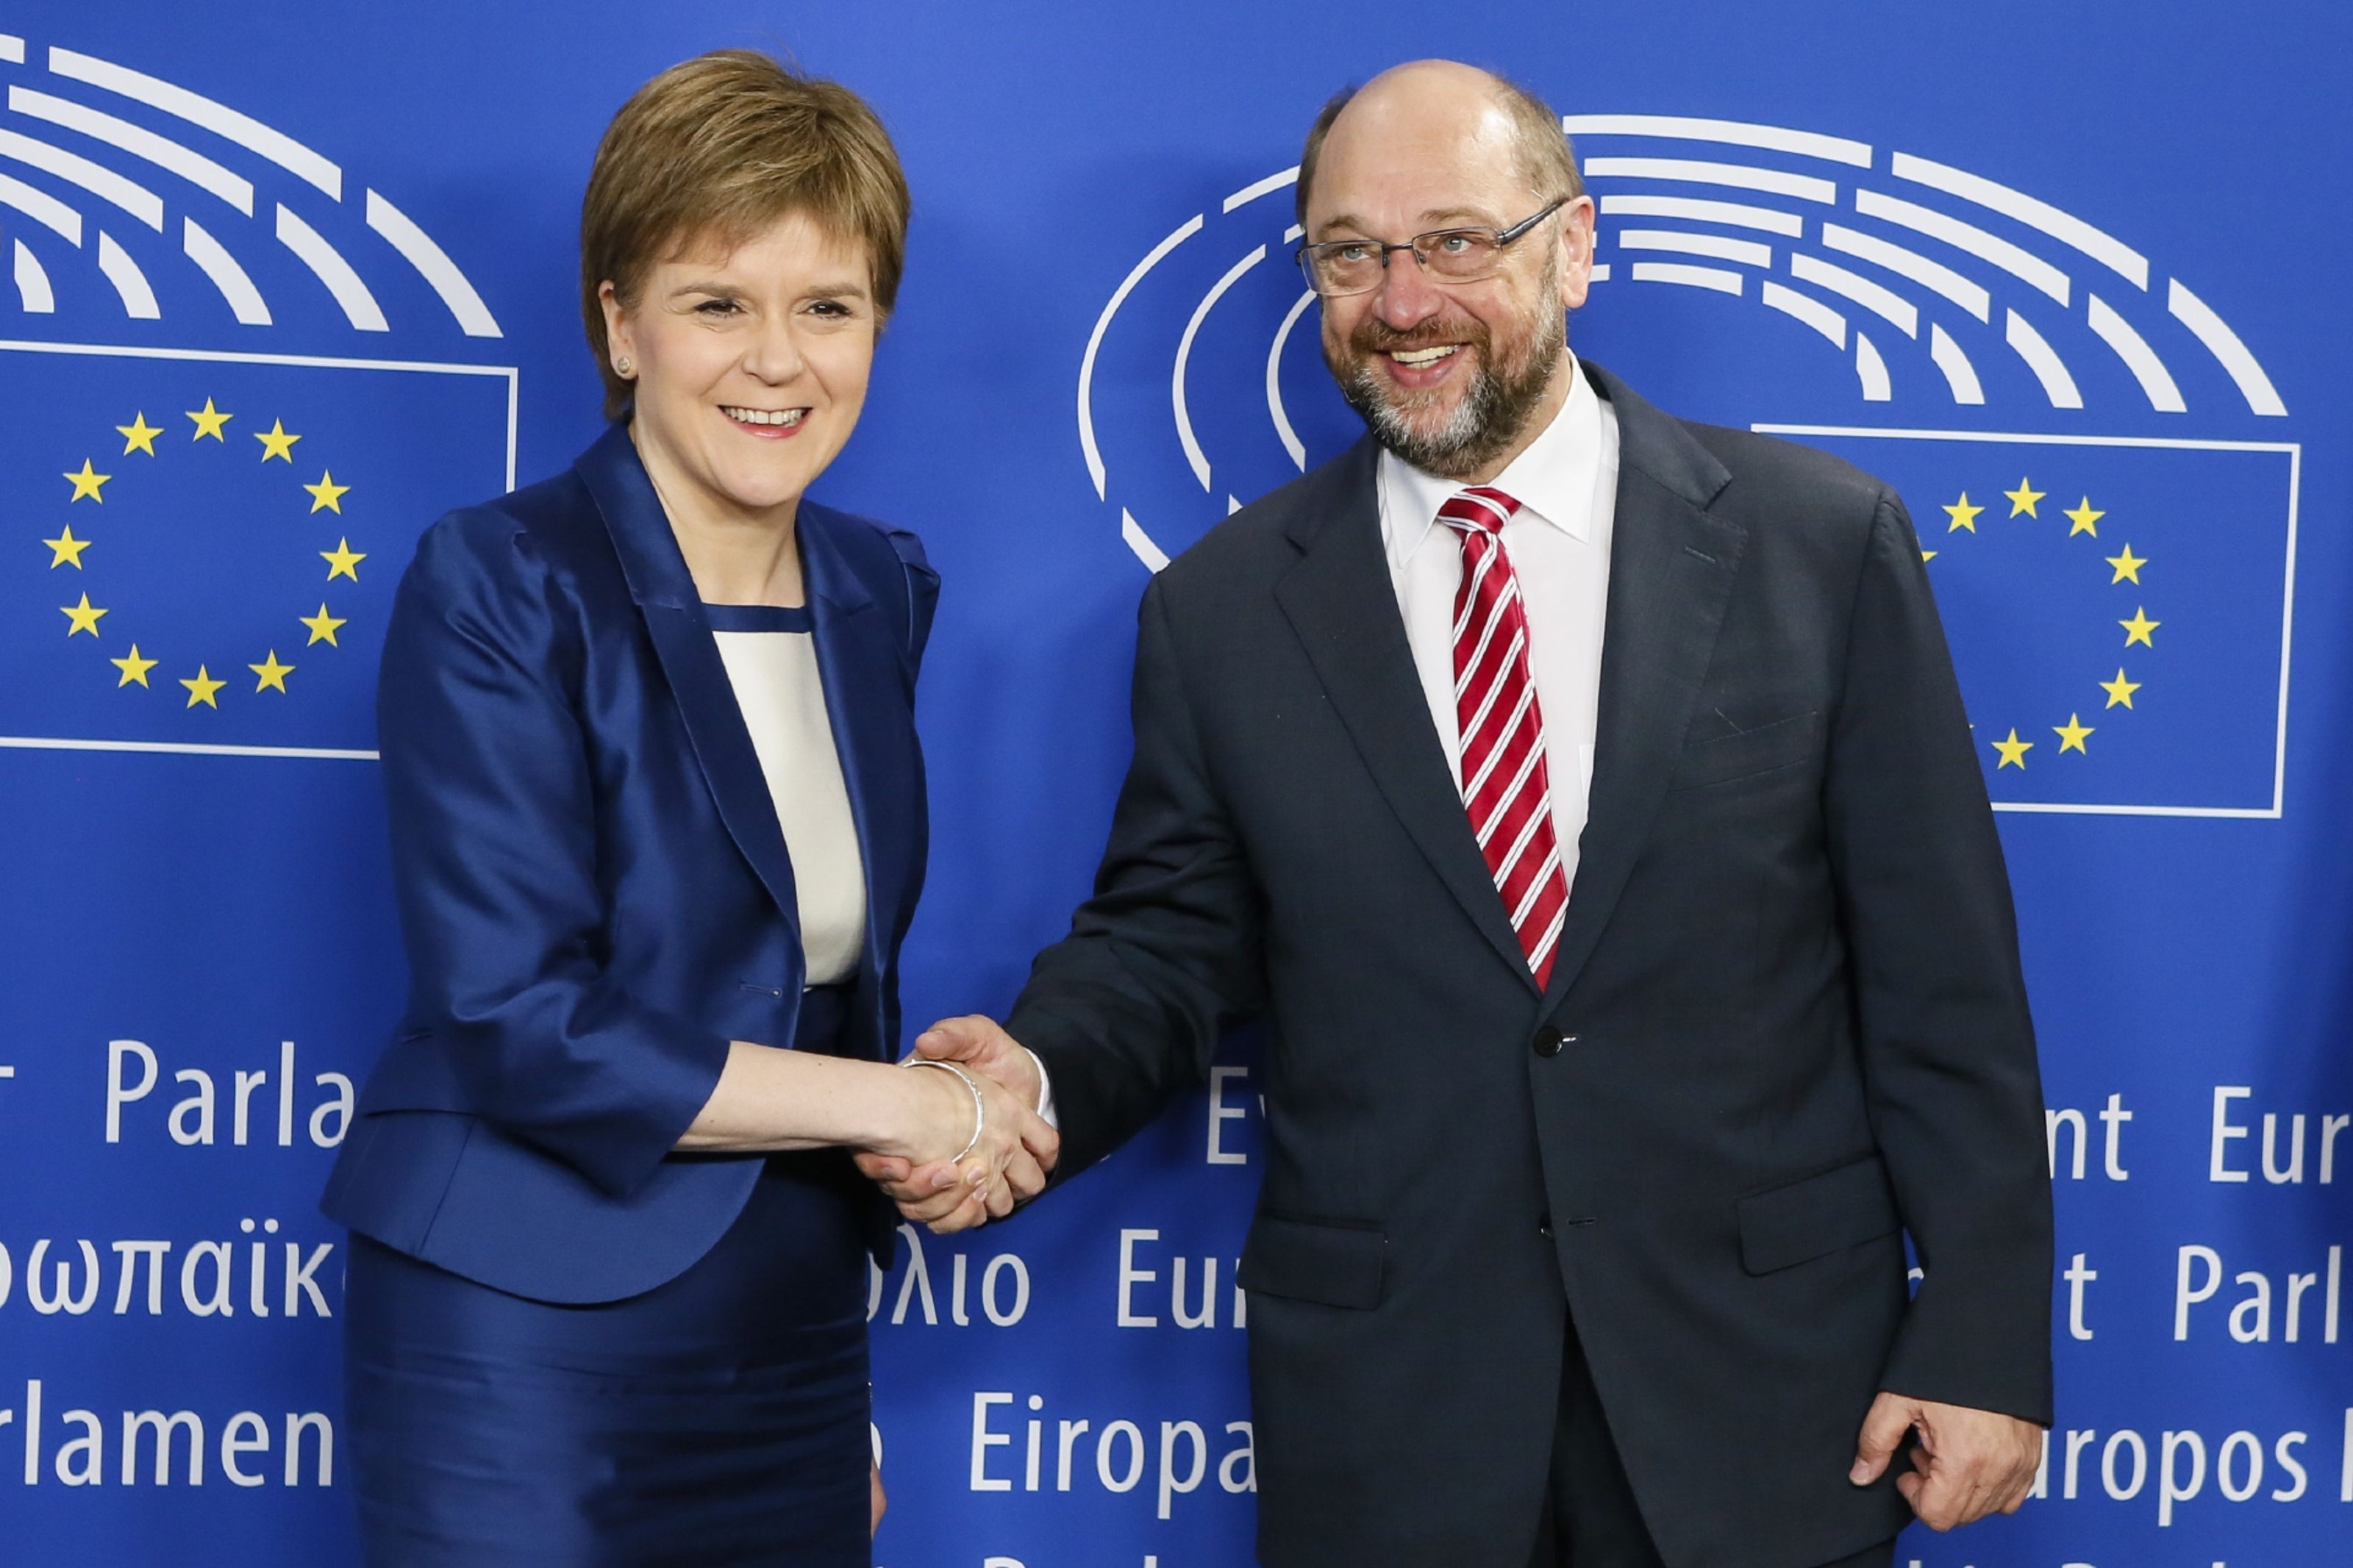 Scottish First Minister Nicola Sturgeon meeting European Parliament President Martin Schulz to discuss options for keeping Scotland in the European Union.